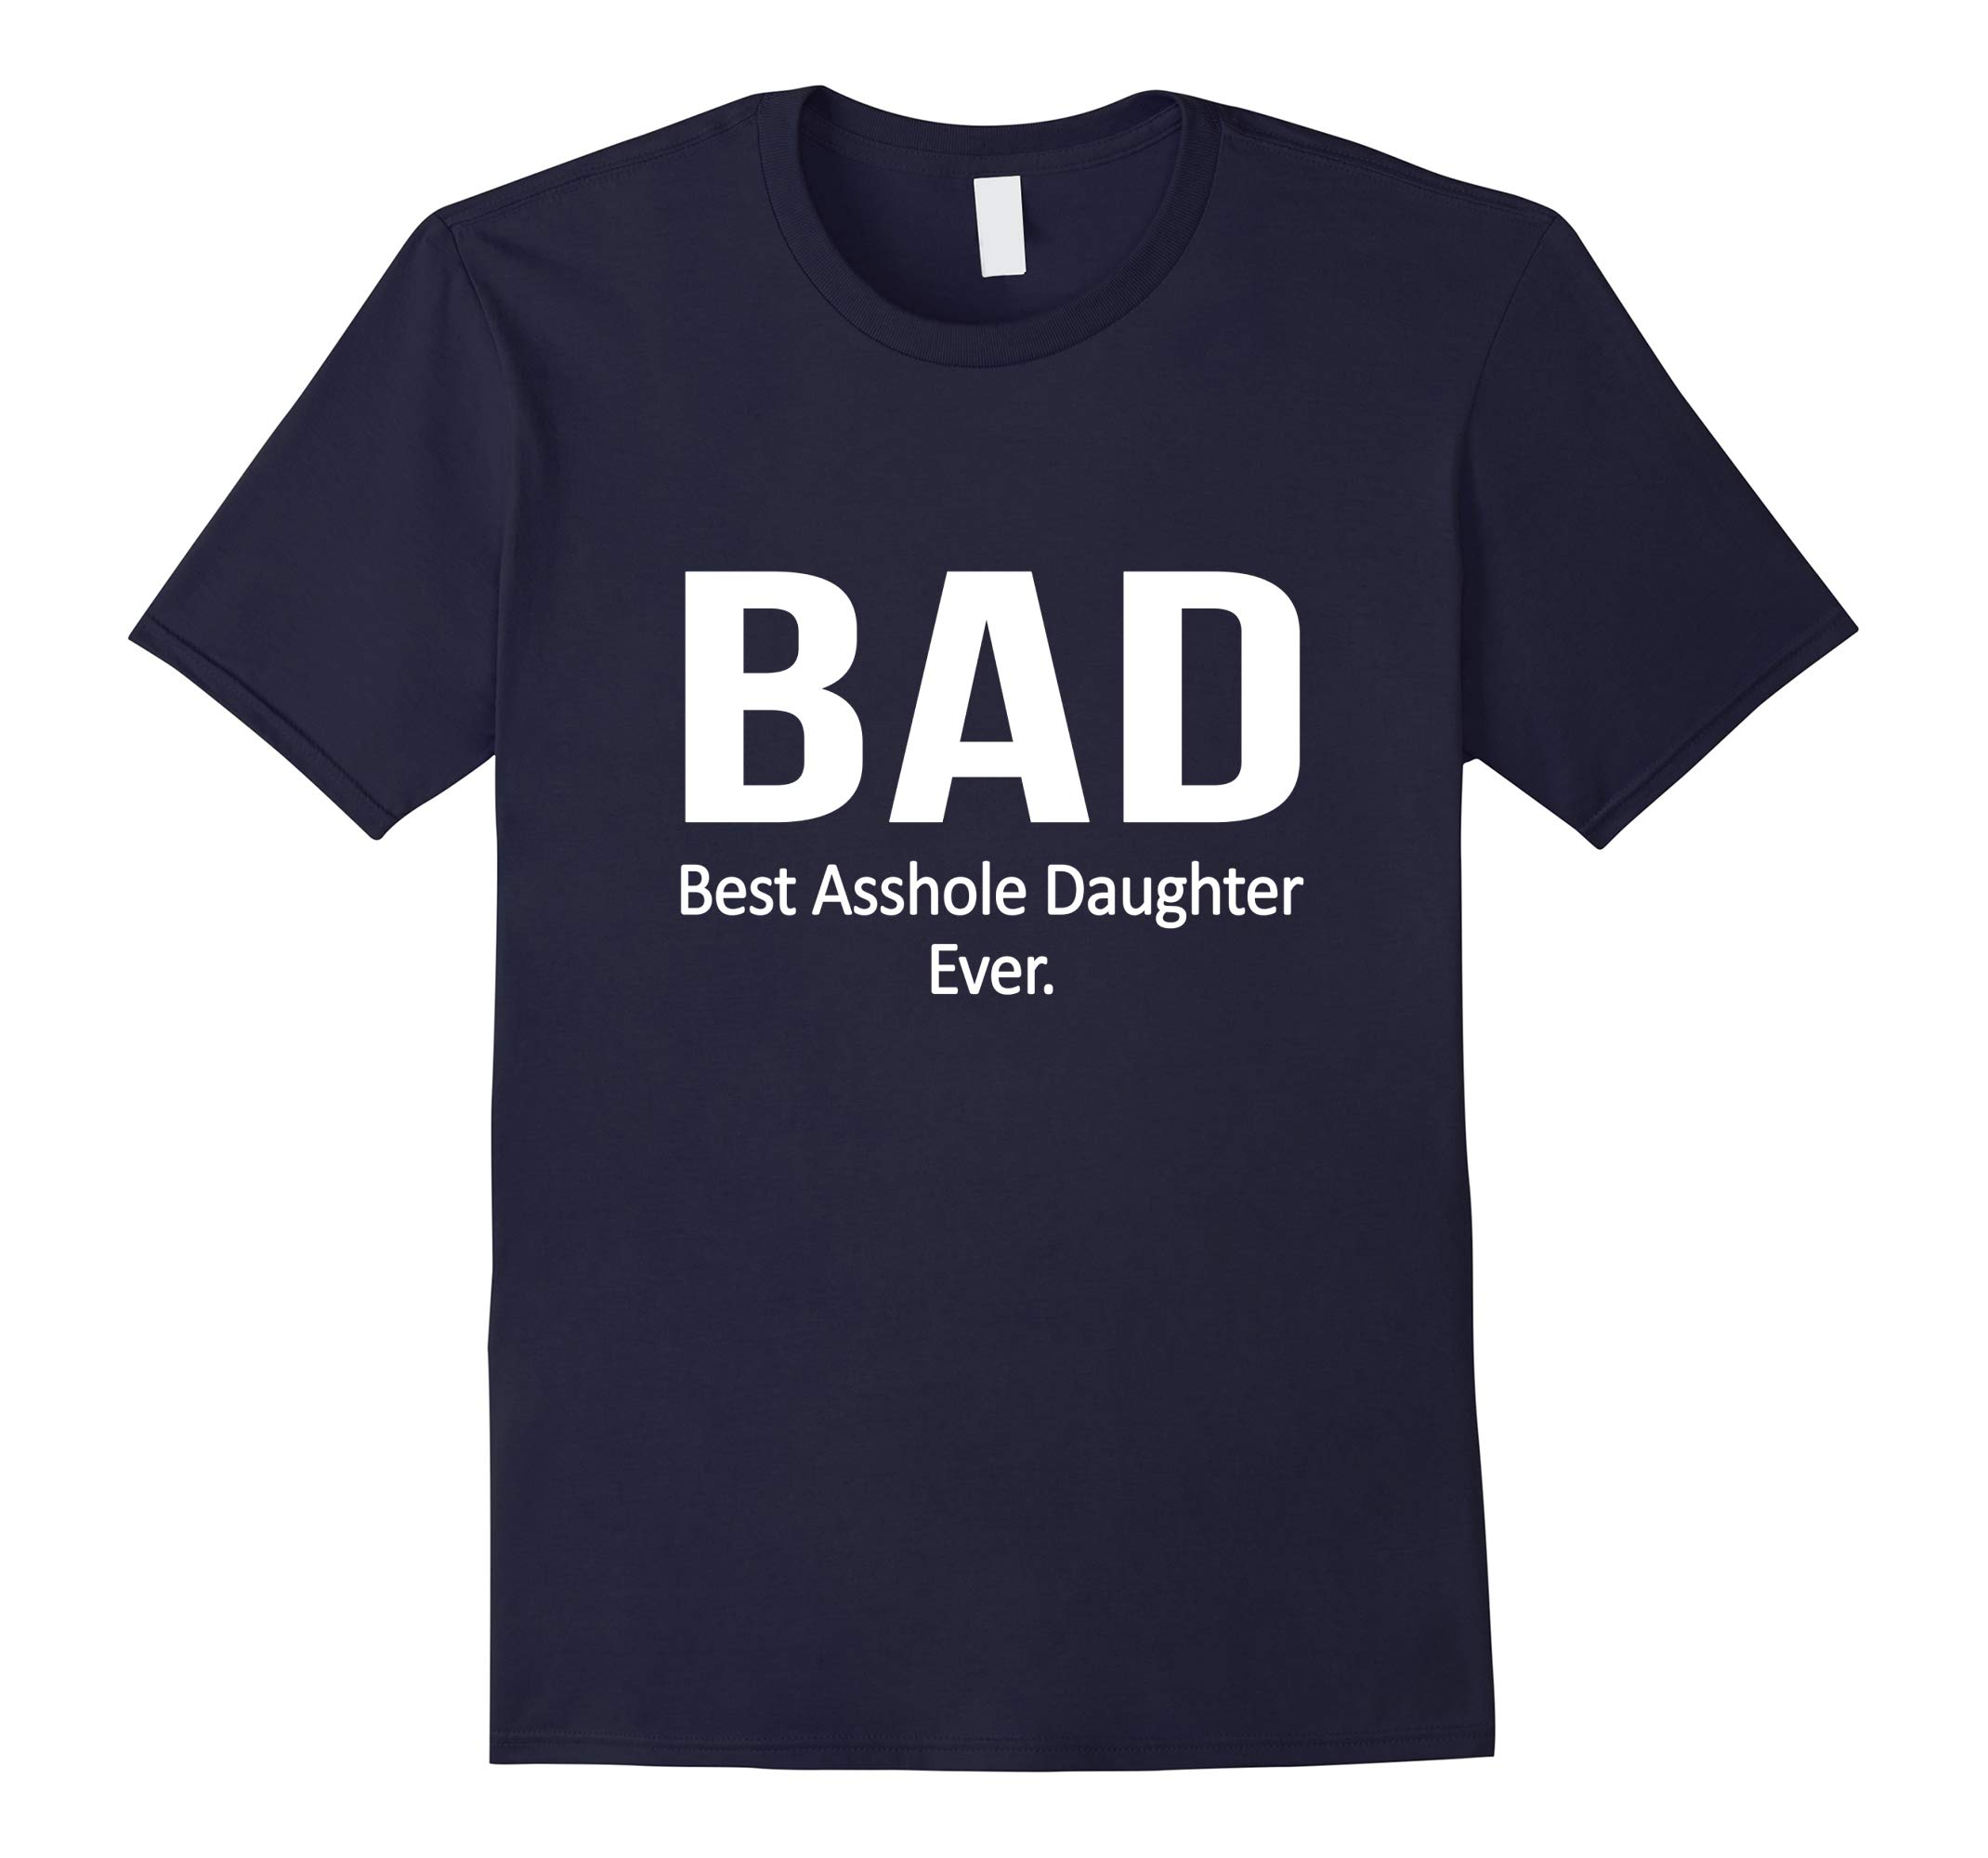 BAD Best Asshole Daughter Ever T-shirt Funny Gift-RT